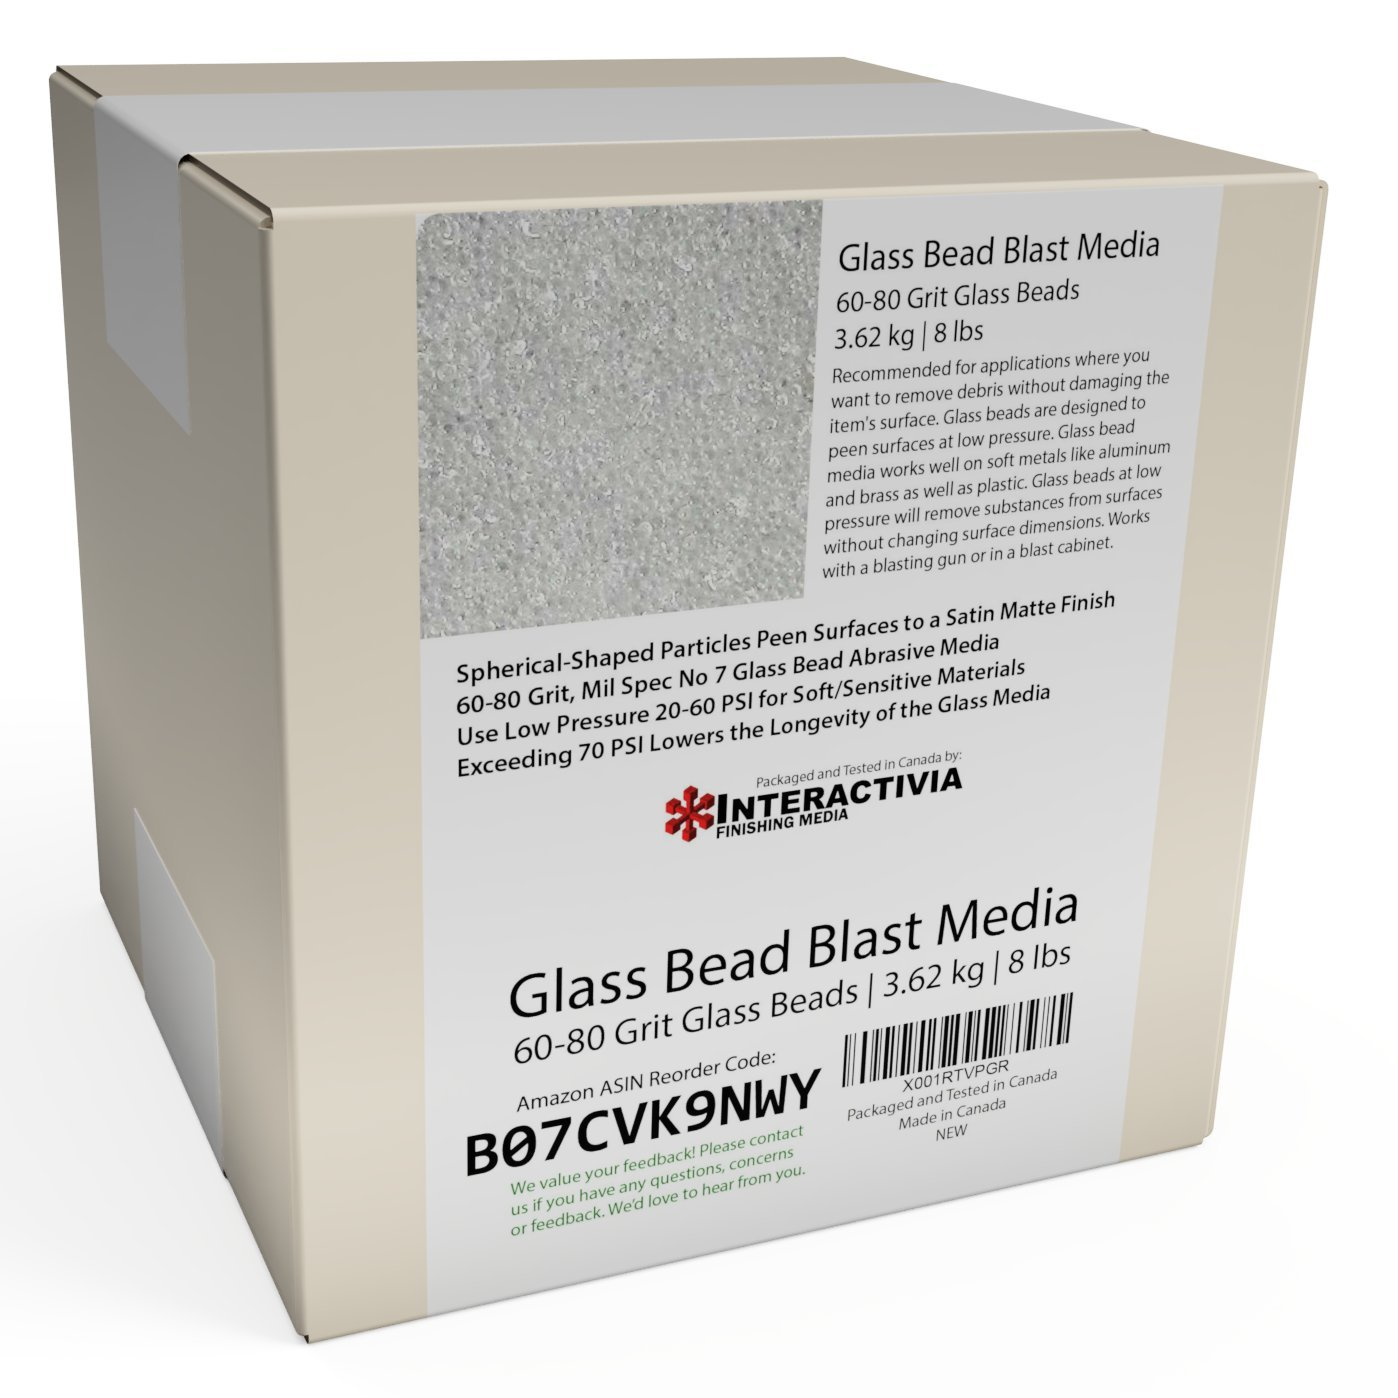 #7 Glass Beads Fine 8 lb or 3.6 kg Spec No 7 for Blast Cabinets Or Sand Blasting Guns 60-80 Mesh or Grit Small Beads for Cleaning and Finishing Blasting Abrasive Media